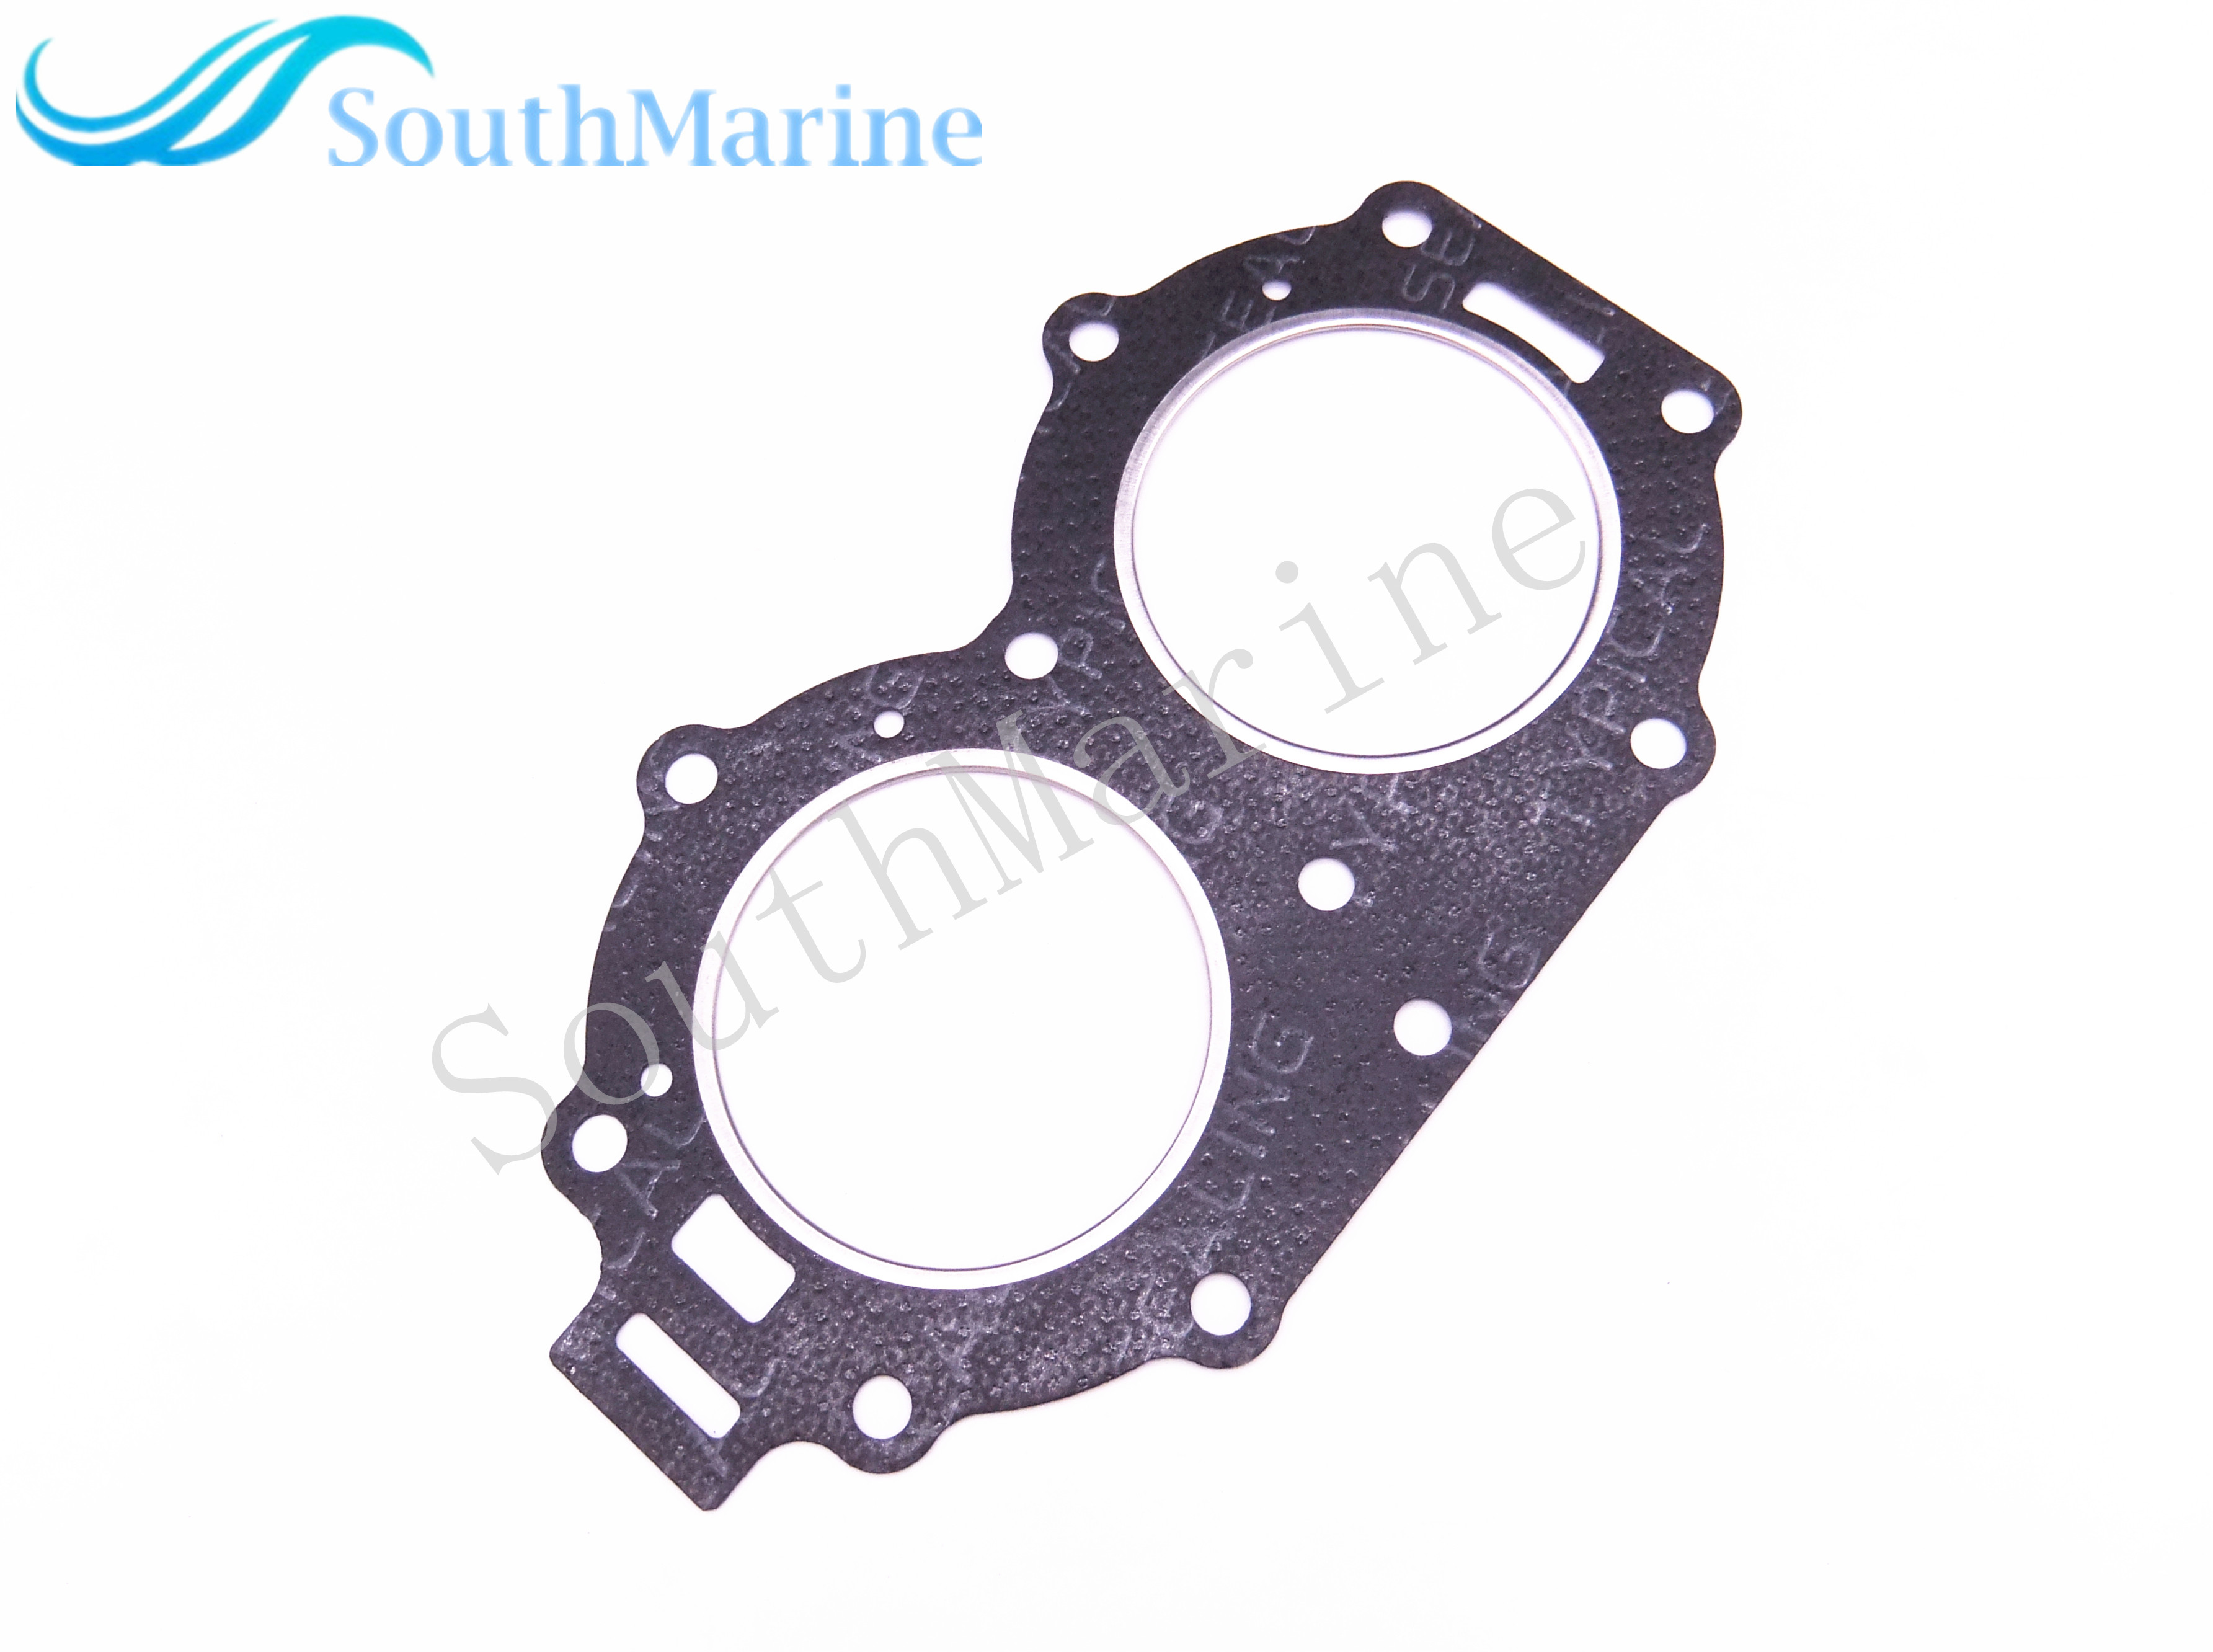 Outboard Engine Boat Motor 61N-11181-A1 Cylinder Head Gasket For Yamaha 2-Stroke 25HP 30HP Free Shipping